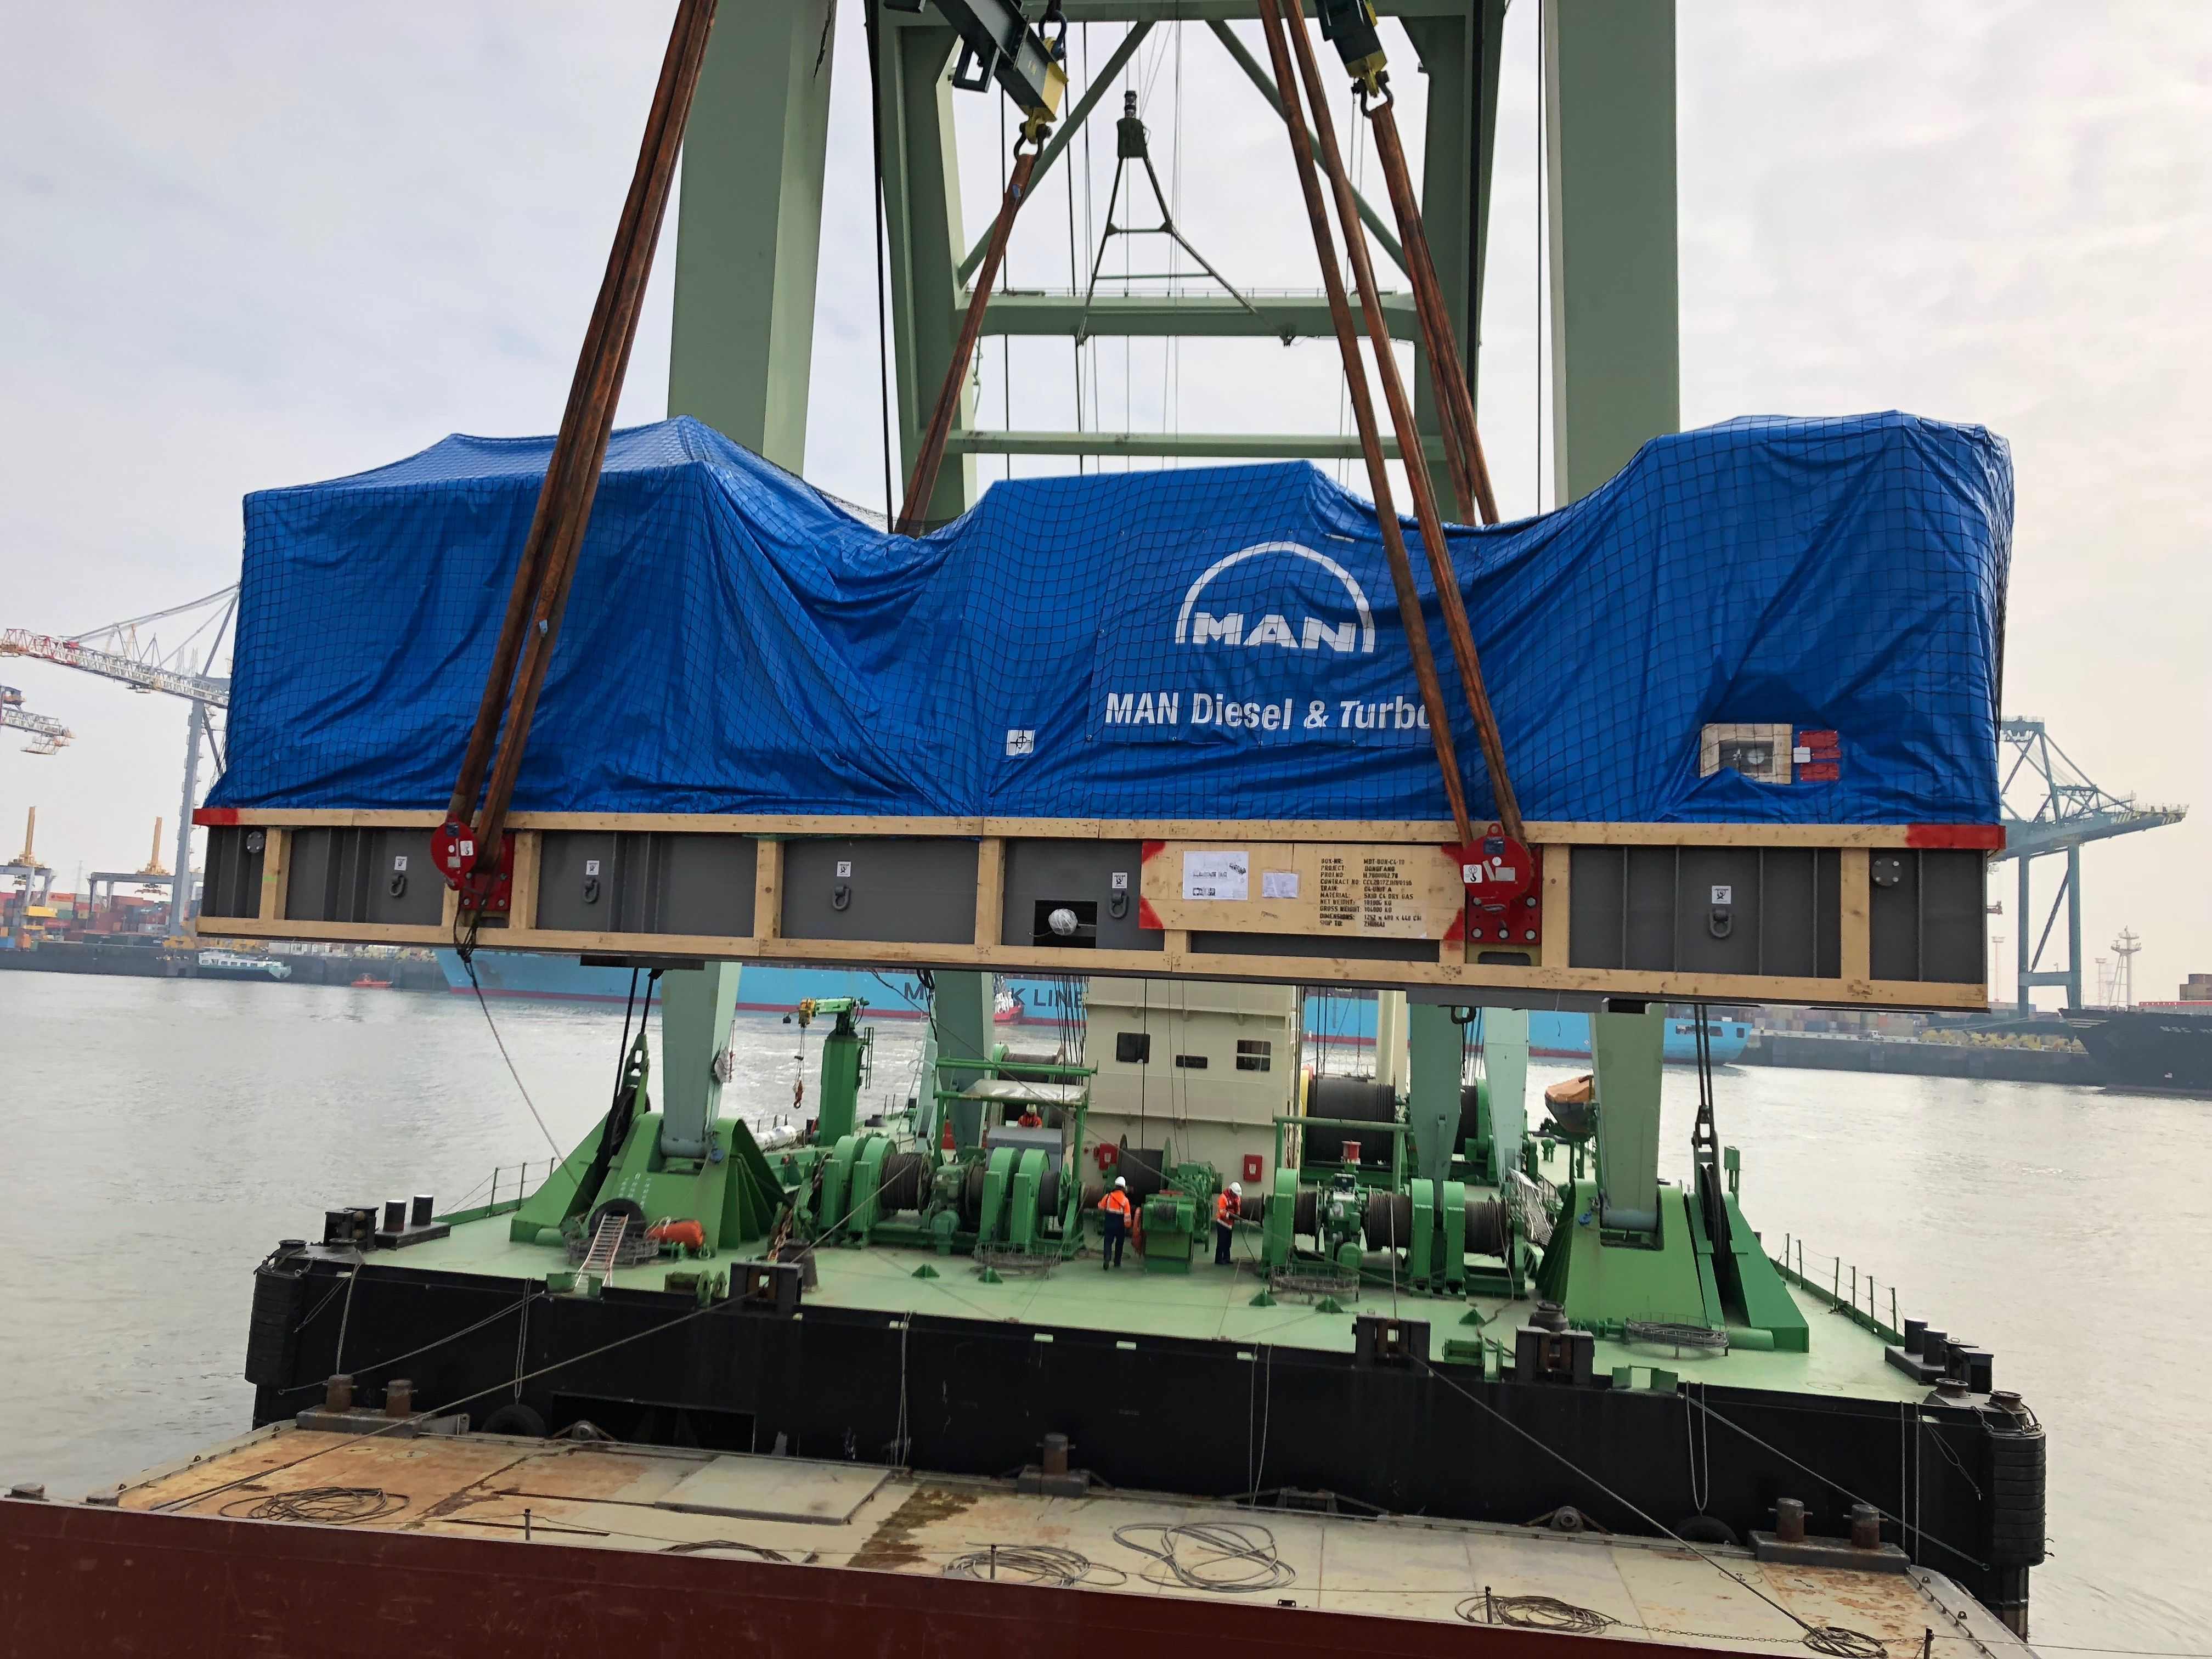 1 / 30 Project ex Antwerp to Hong Kong - 6 Heavy Lift Units - loaded as Breakbulk on Container vessel on bed of 18x40'Flat Rack (3 units each 900x430x430cm each 62'500 kgs + 3 units each 1245x482x455cm each 104'000 kgs)